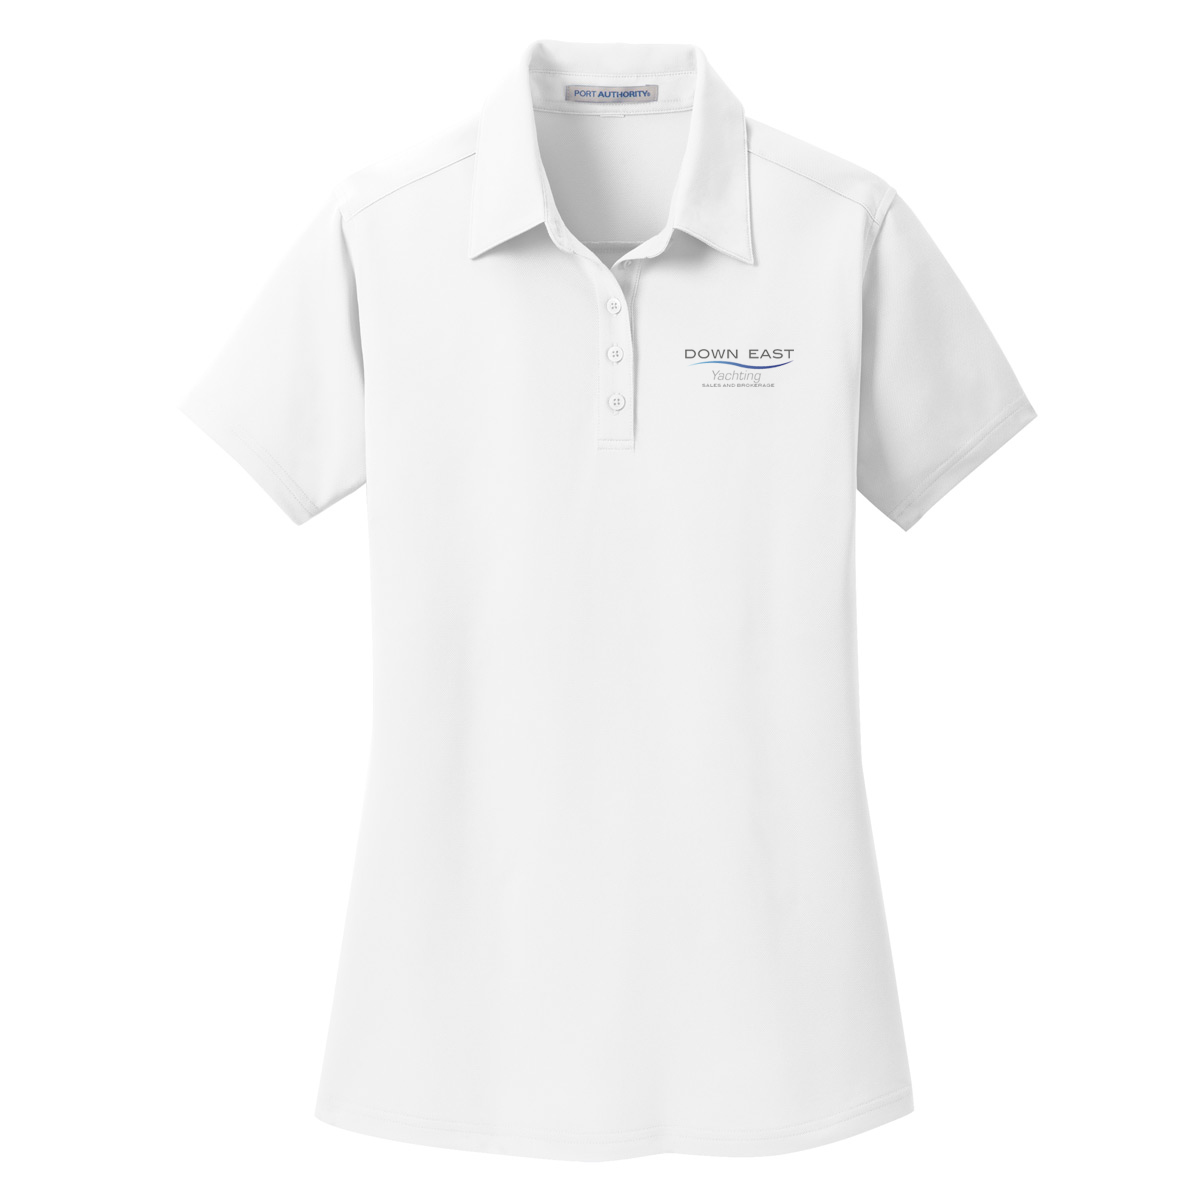 Down East Yachting - Women's Tech Polo